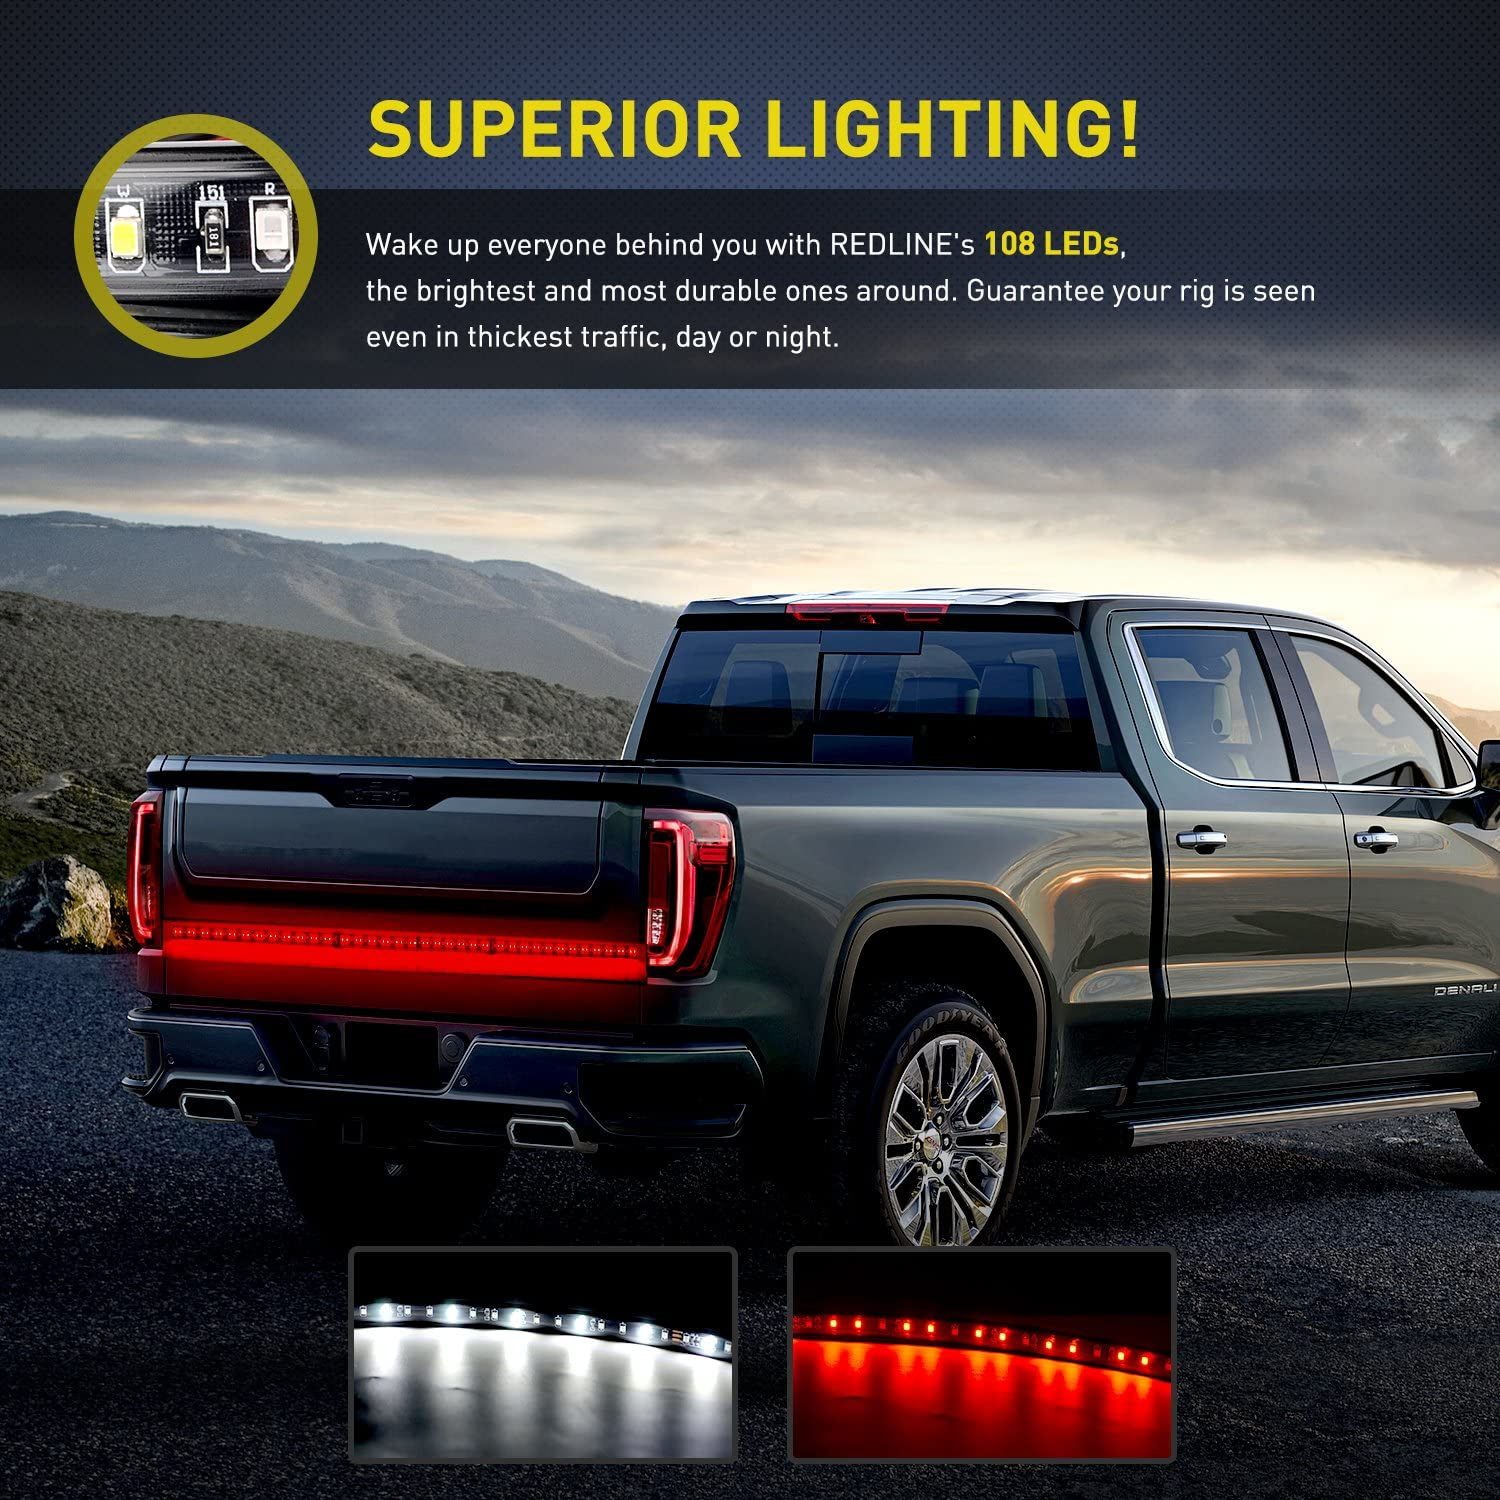 2 Years Warranty Nilight TL-11 1PC Red 9 LED ID Bar Marker Tail Black Stainless Steel Bracket for Truck Trailer Boat Identification Light